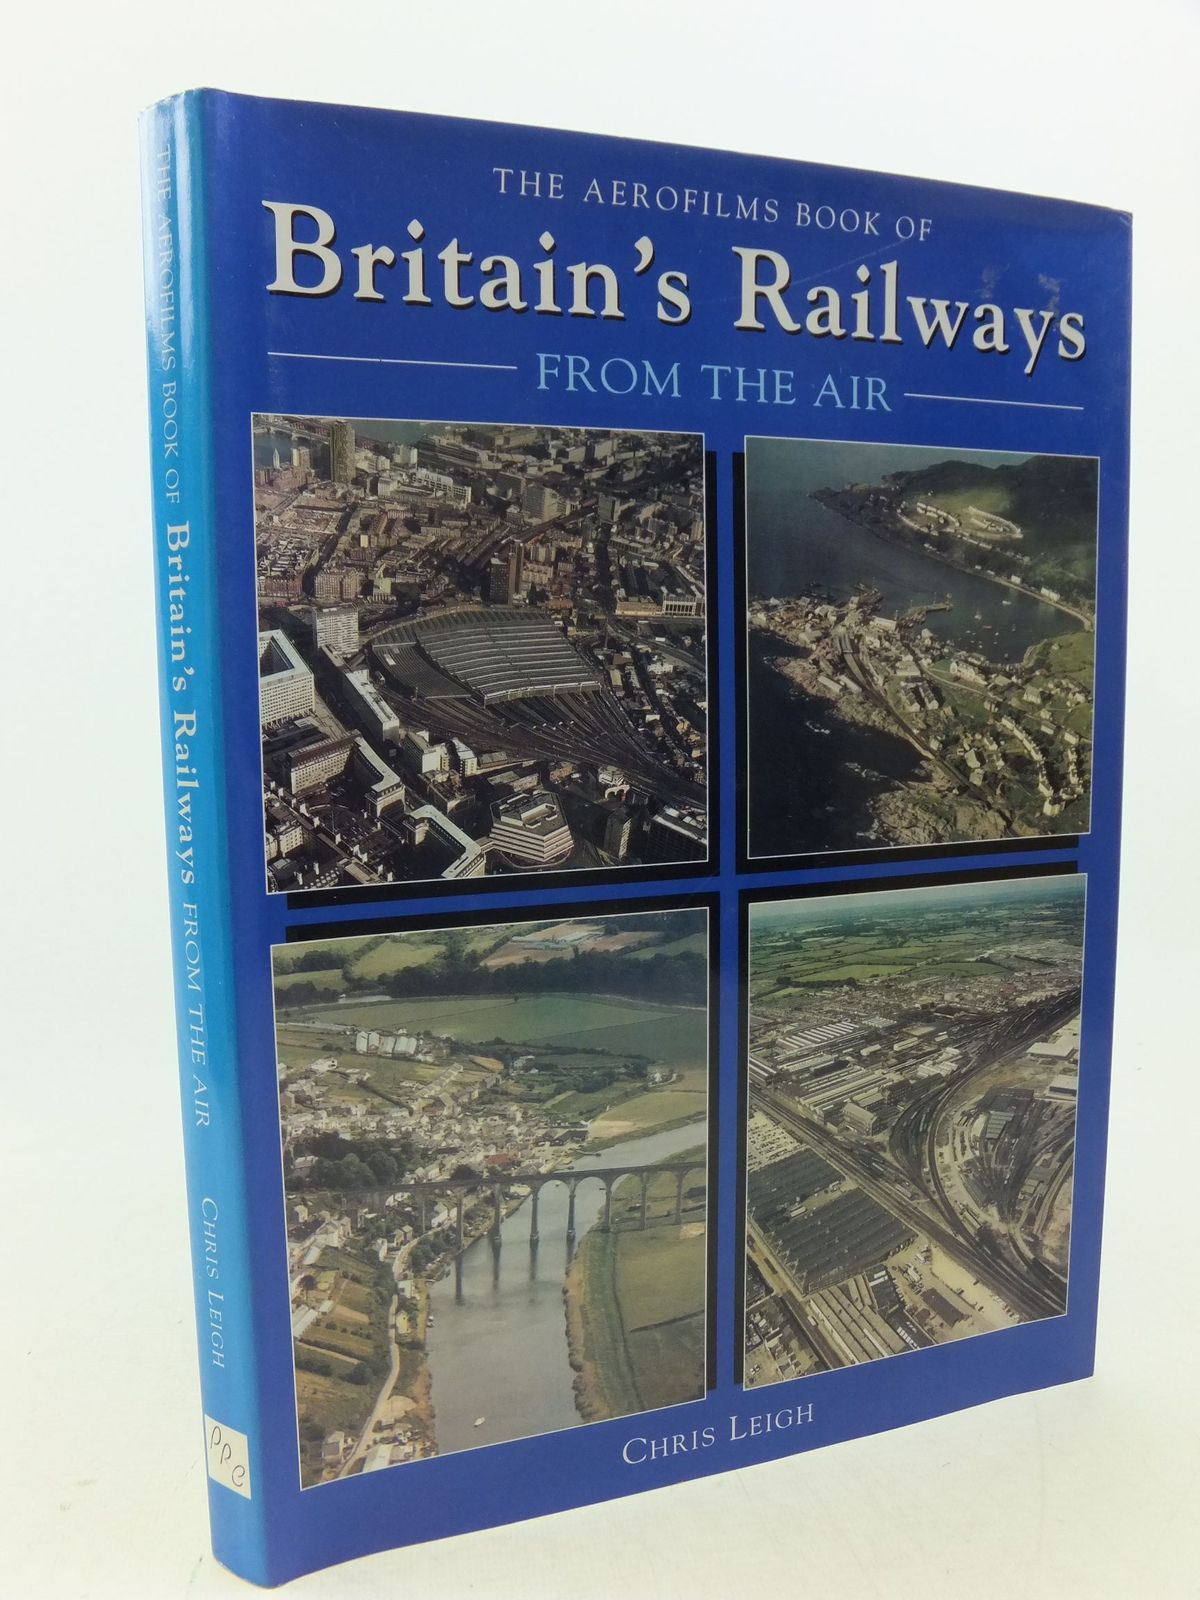 Photo of THE AEROFILMS BOOK OF BRITAIN'S RAILWAYS FROM THE AIR written by Leigh, Chris published by Prc Publishing (STOCK CODE: 2113619)  for sale by Stella & Rose's Books